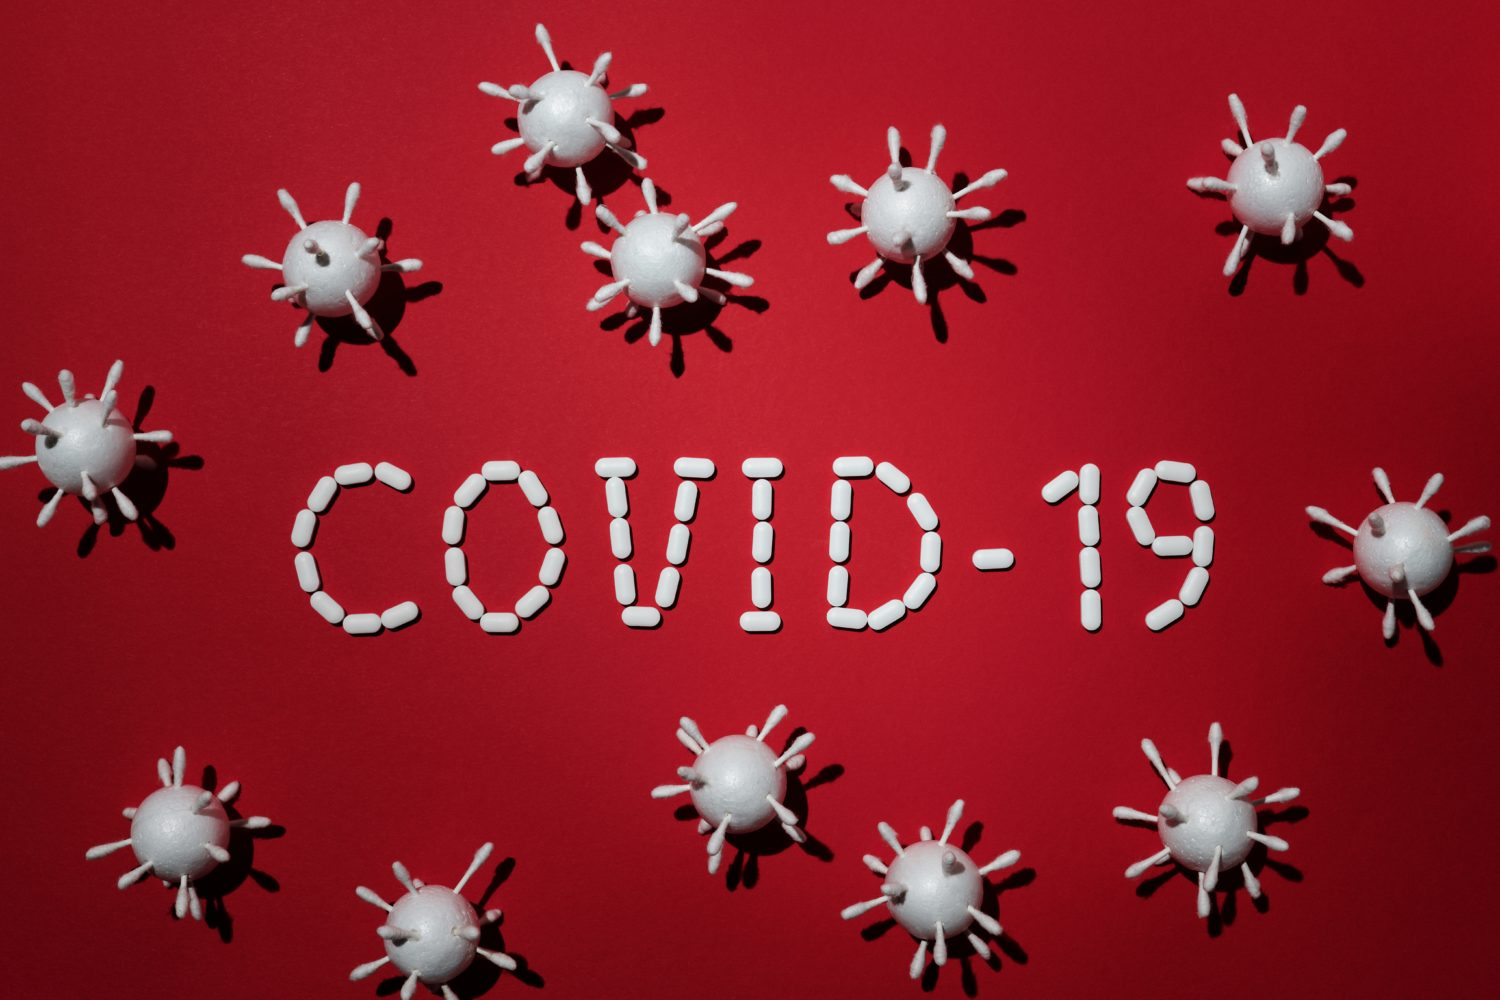 Coronavirus (COVID-19) – Return Of Legal Permanent Residents & U.S. Citizens To The U.S.